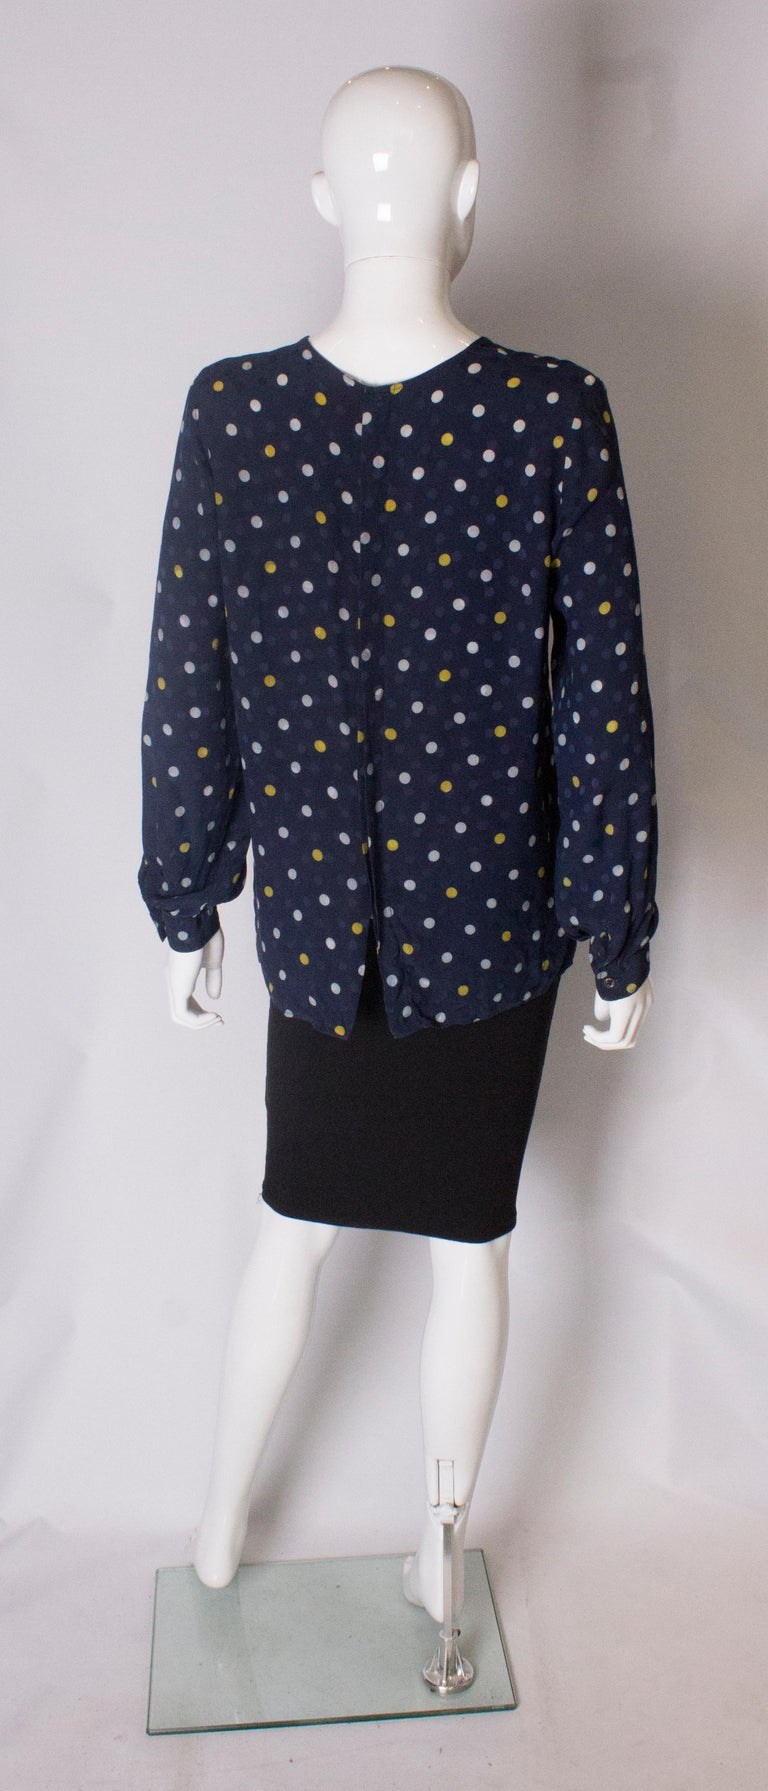 A Vintage 1990s navy polka dot silk blouse by Valentino  For Sale 2